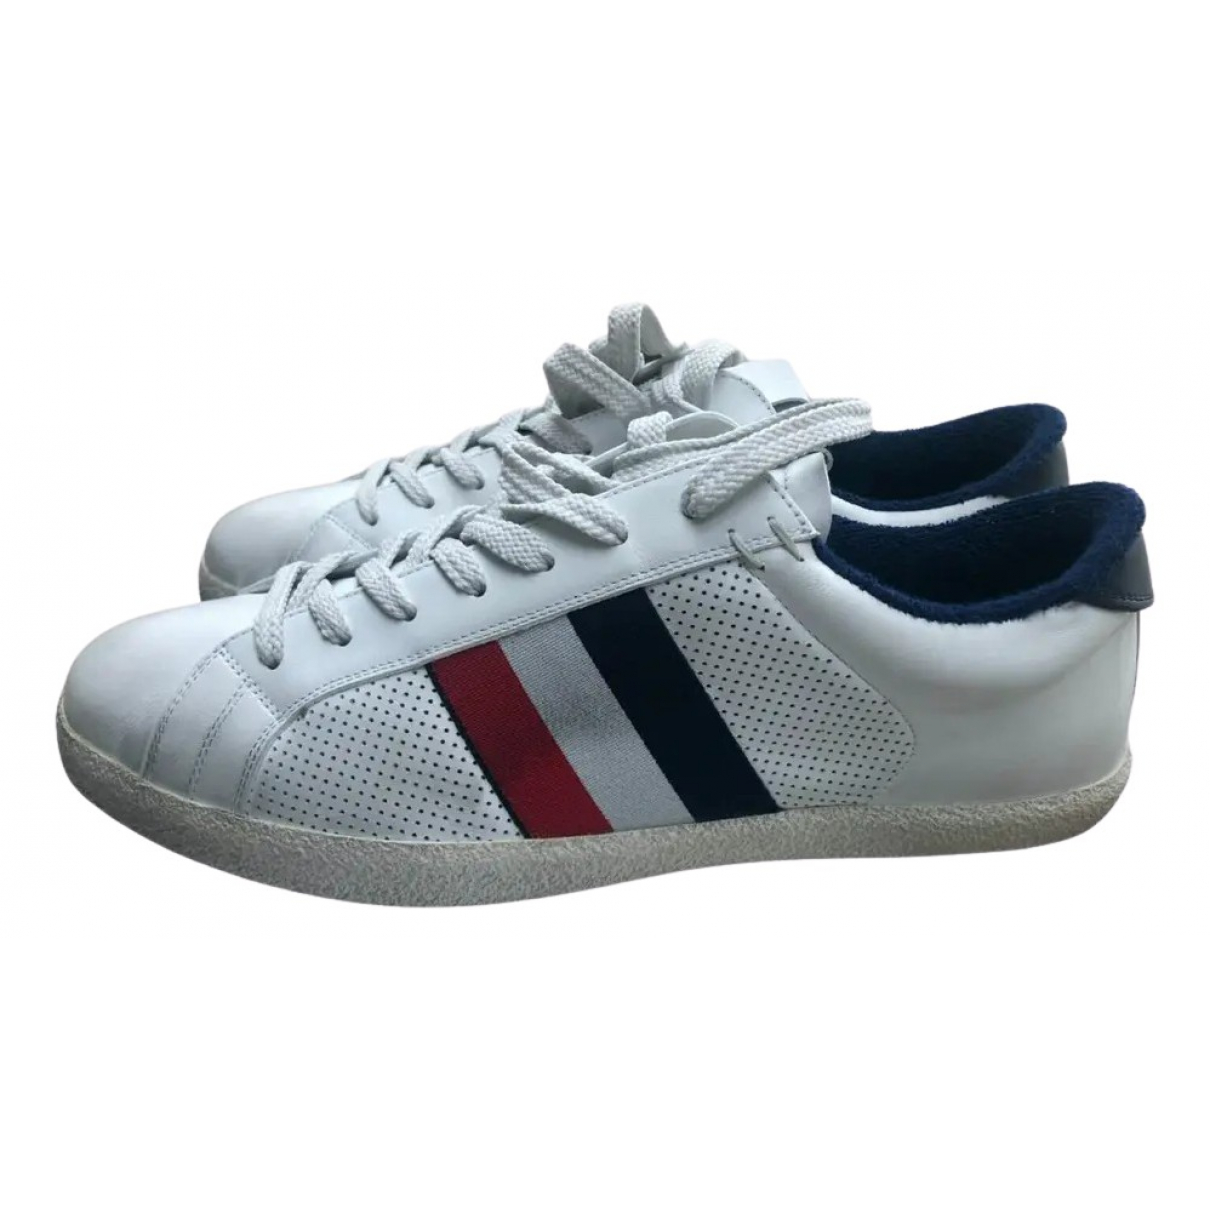 Moncler \N White Leather Trainers for Men 41 EU